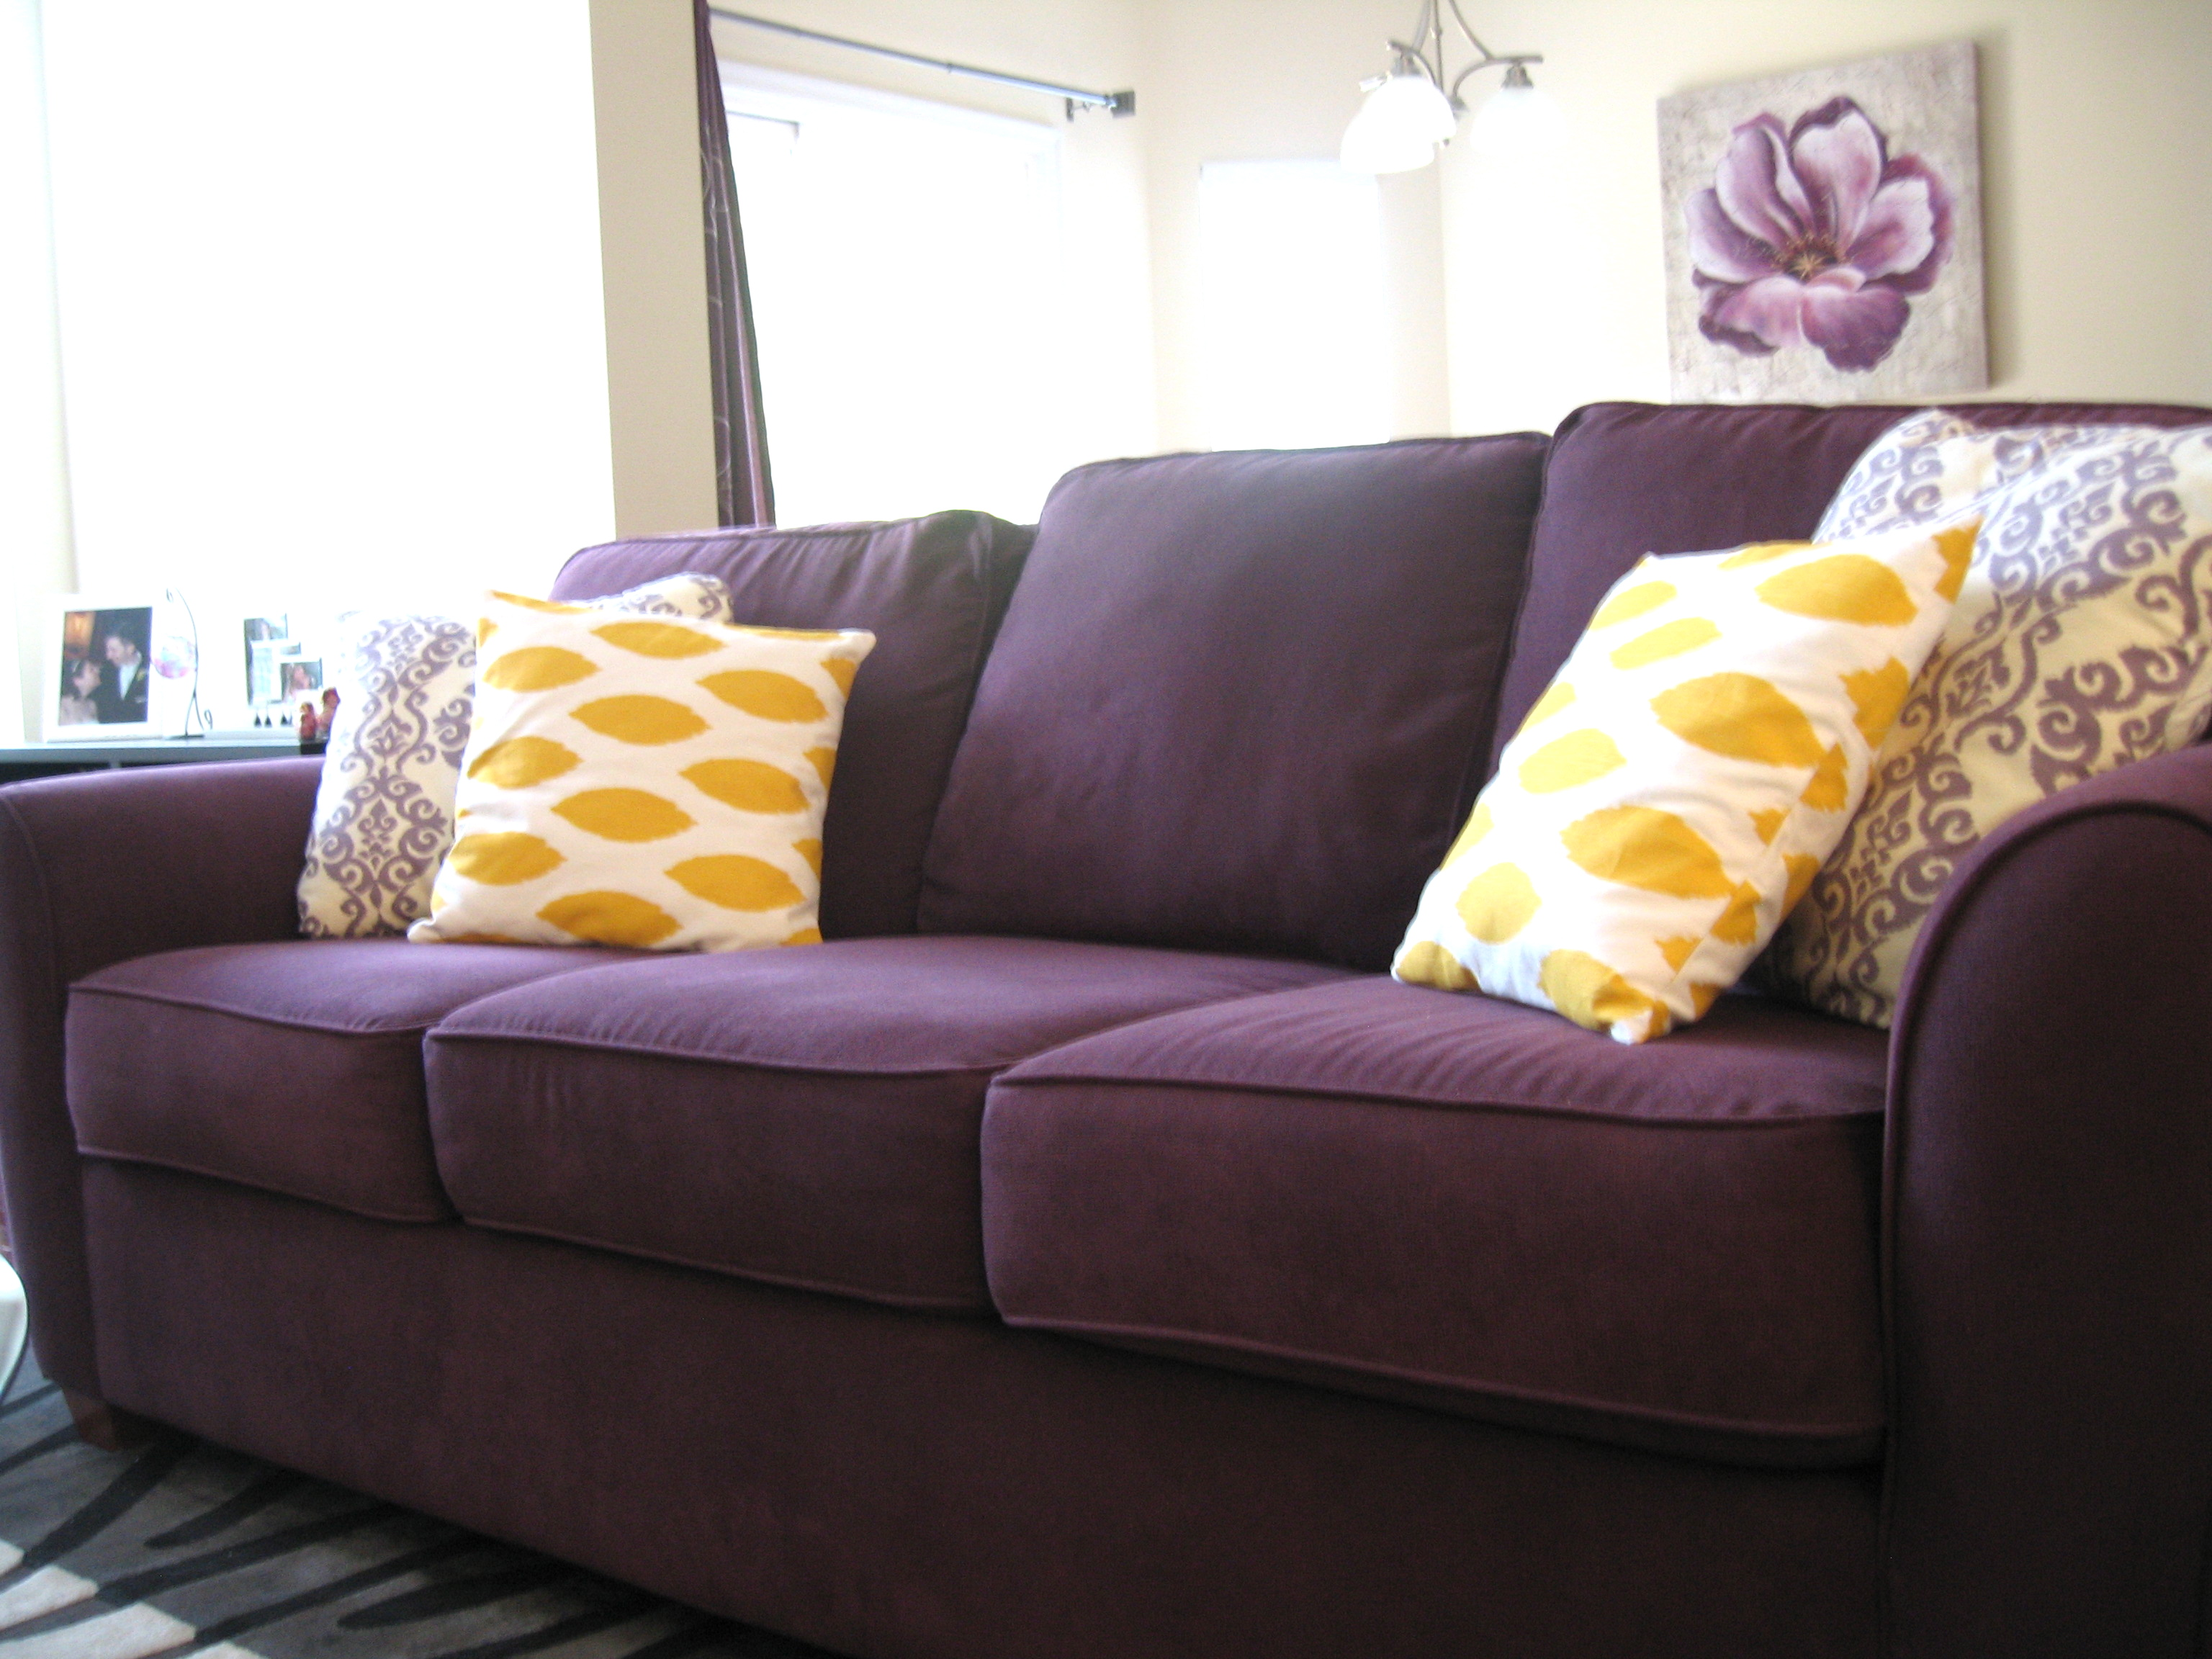 purple sofas modular sofa system couch garnitur lyon fabric archives two couches